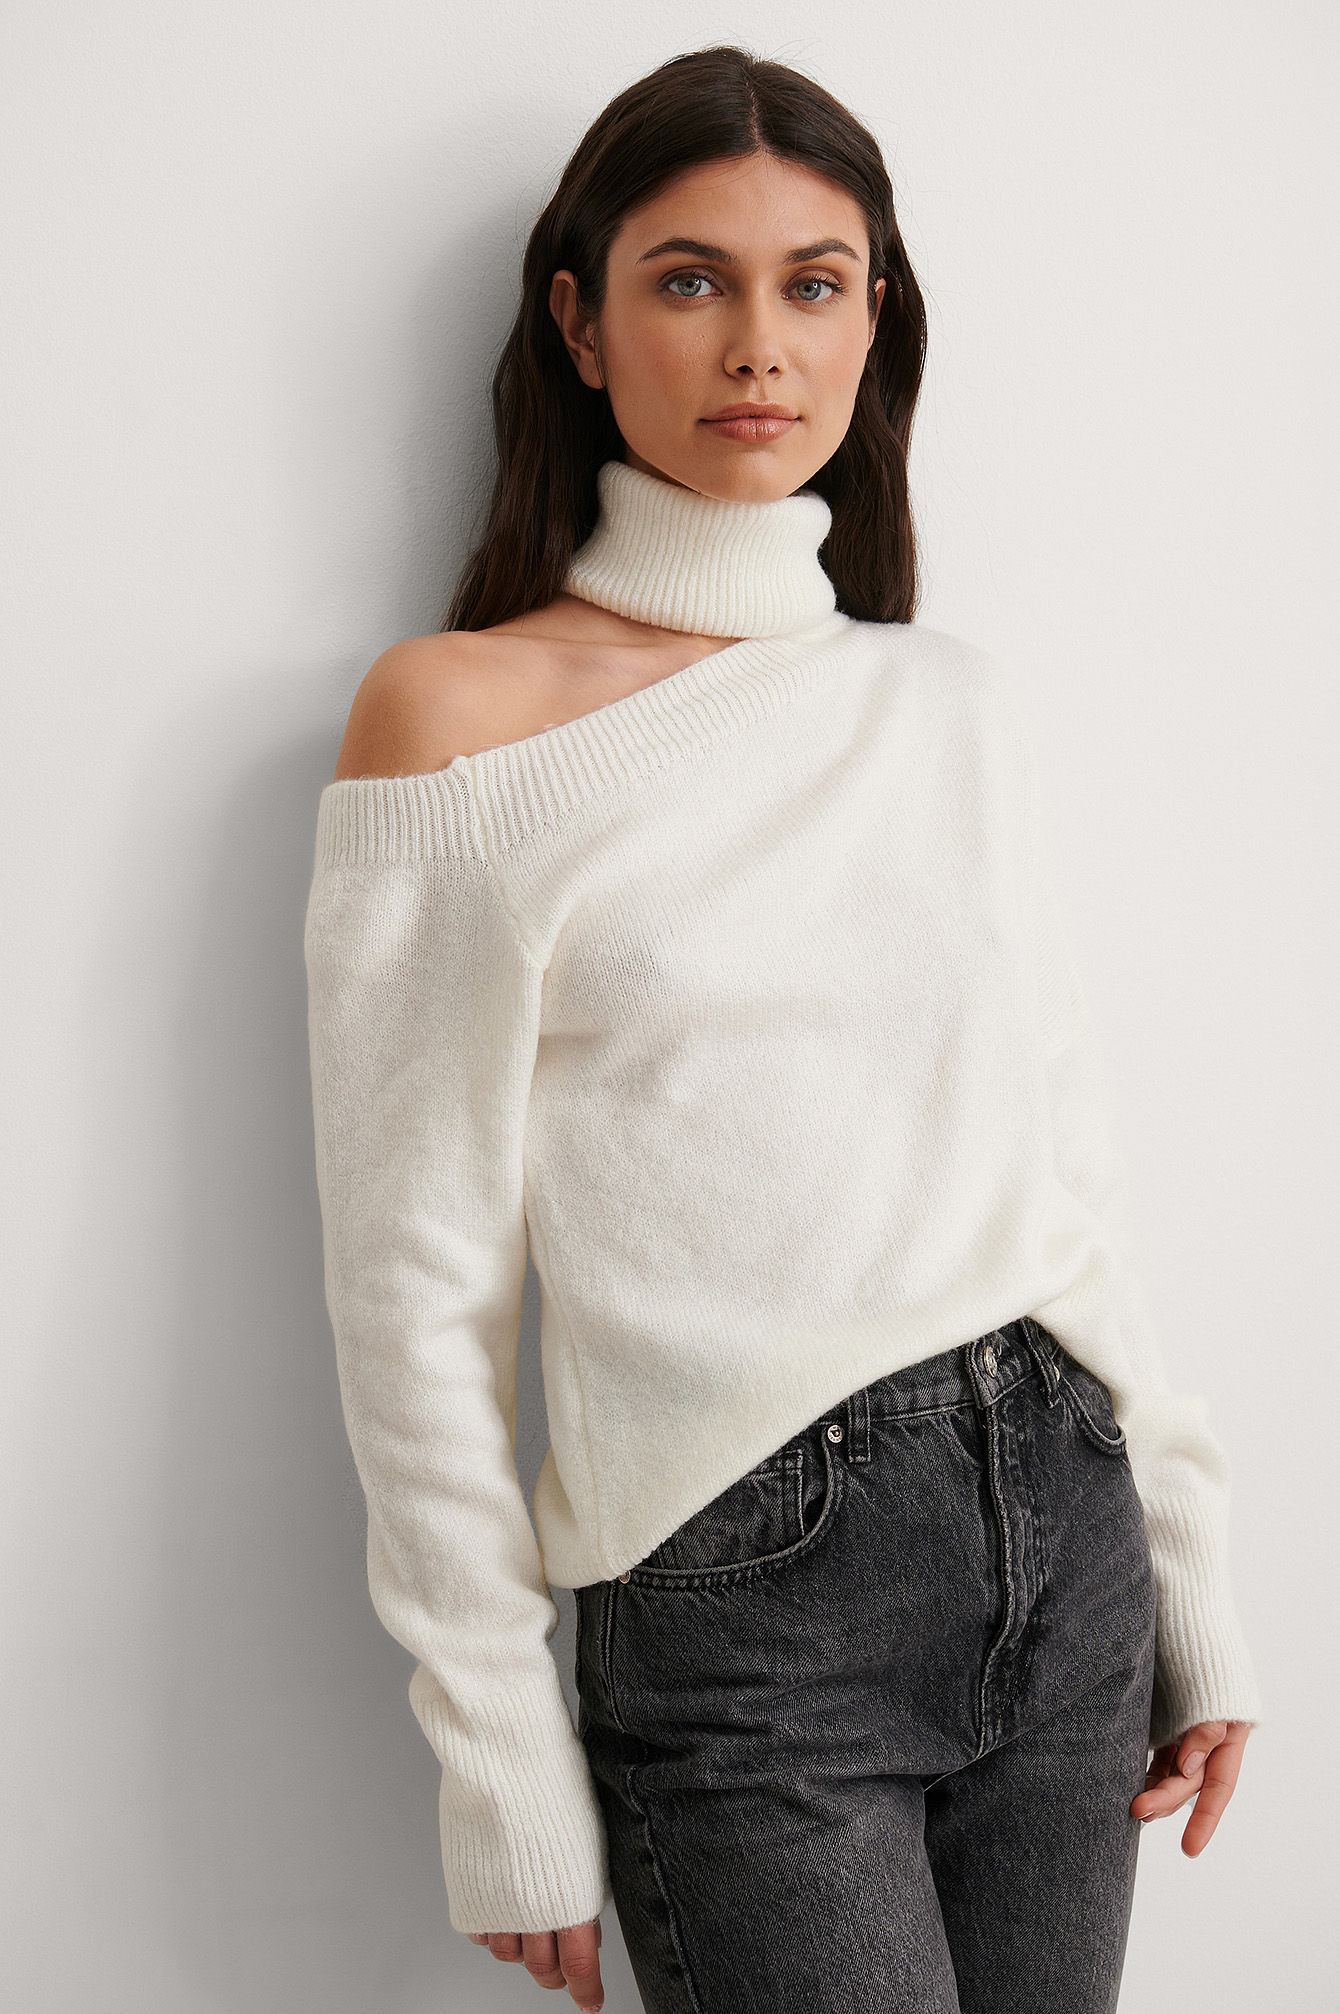 Ecru One Shoulder Turtleneck Knit Sweater